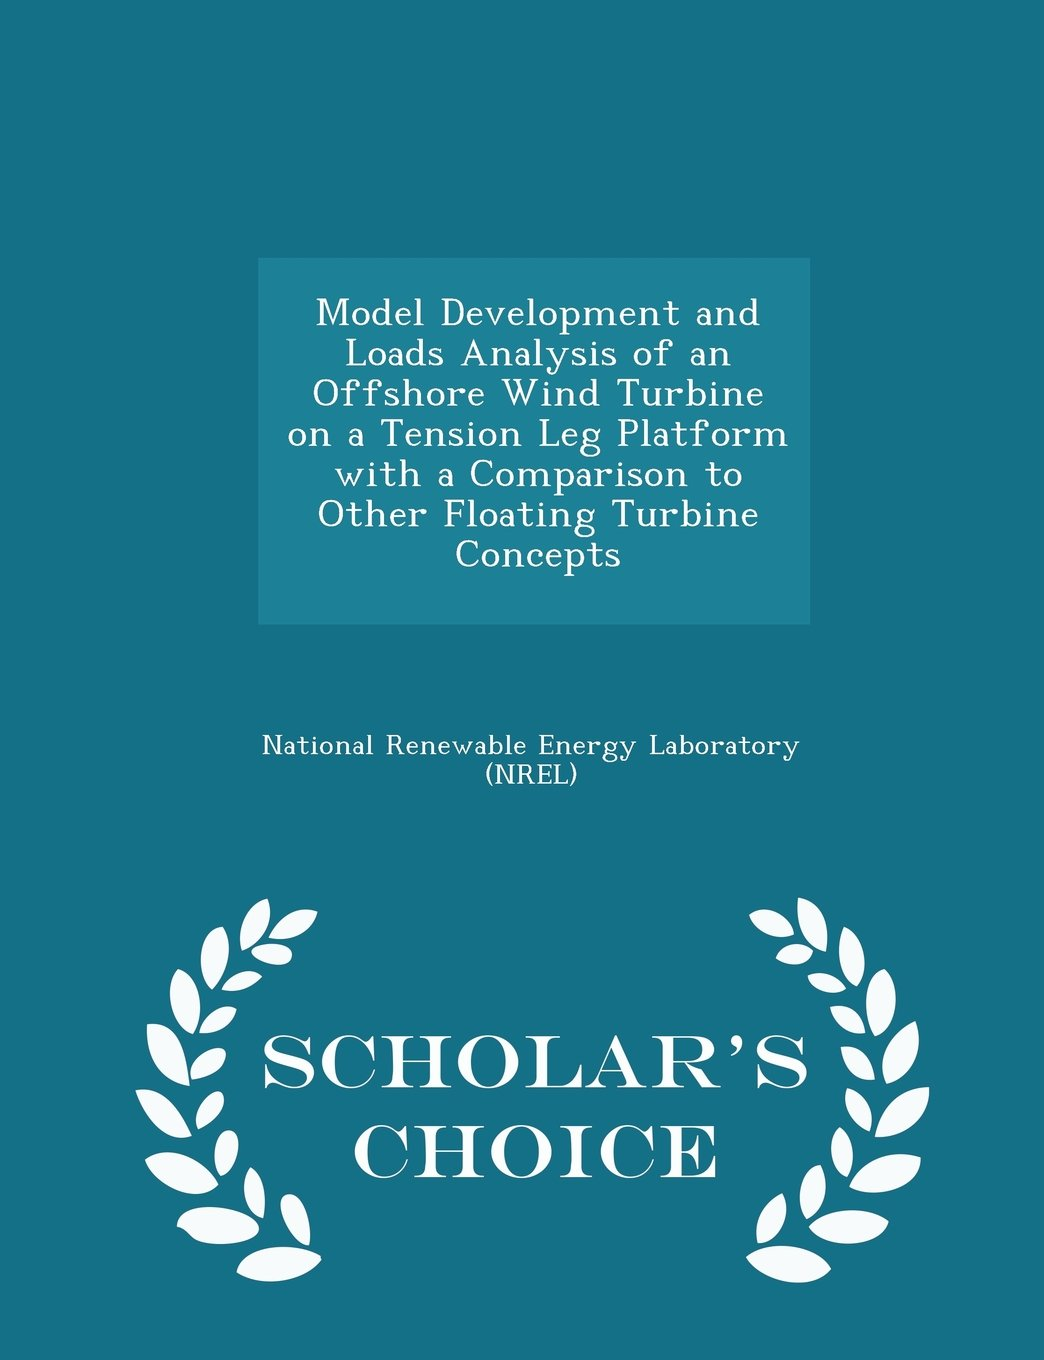 Model Development and Loads Analysis of an Offshore Wind Turbine on a Tension Leg Platform with a Comparison to Other Floating Turbine Concepts - Scholar's Choice Edition pdf